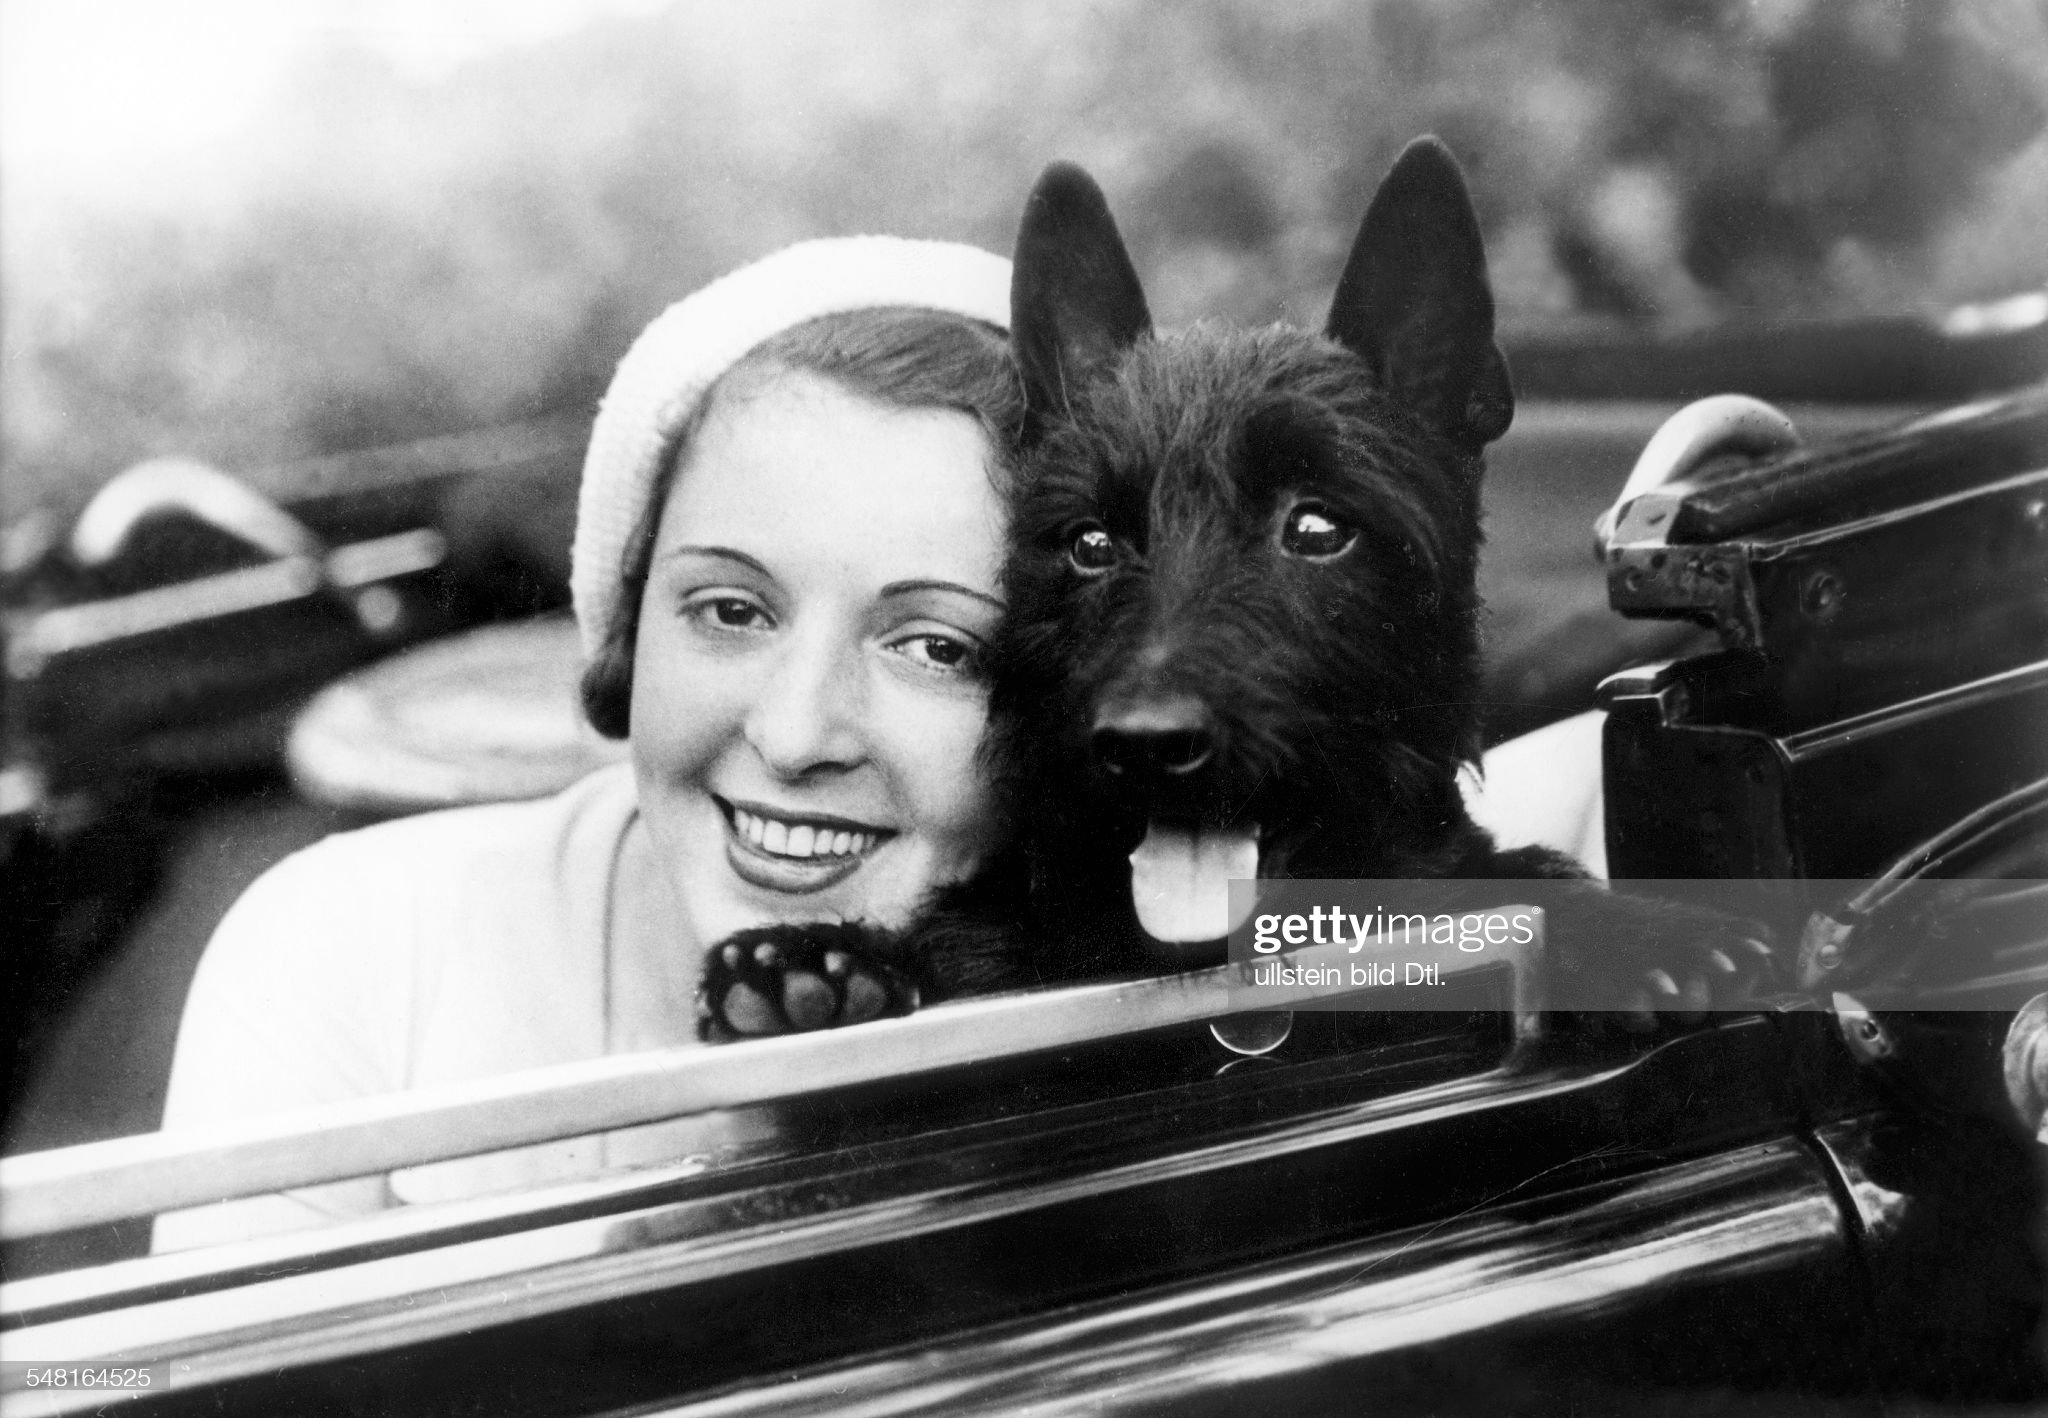 Jugo, Jenny - Actress, Austria - *14.06.1904-30.09.2001+ sitting in a car with her dog - undated Photographer: Zander und Labisch - Vintage property of ullstein bild : News Photo